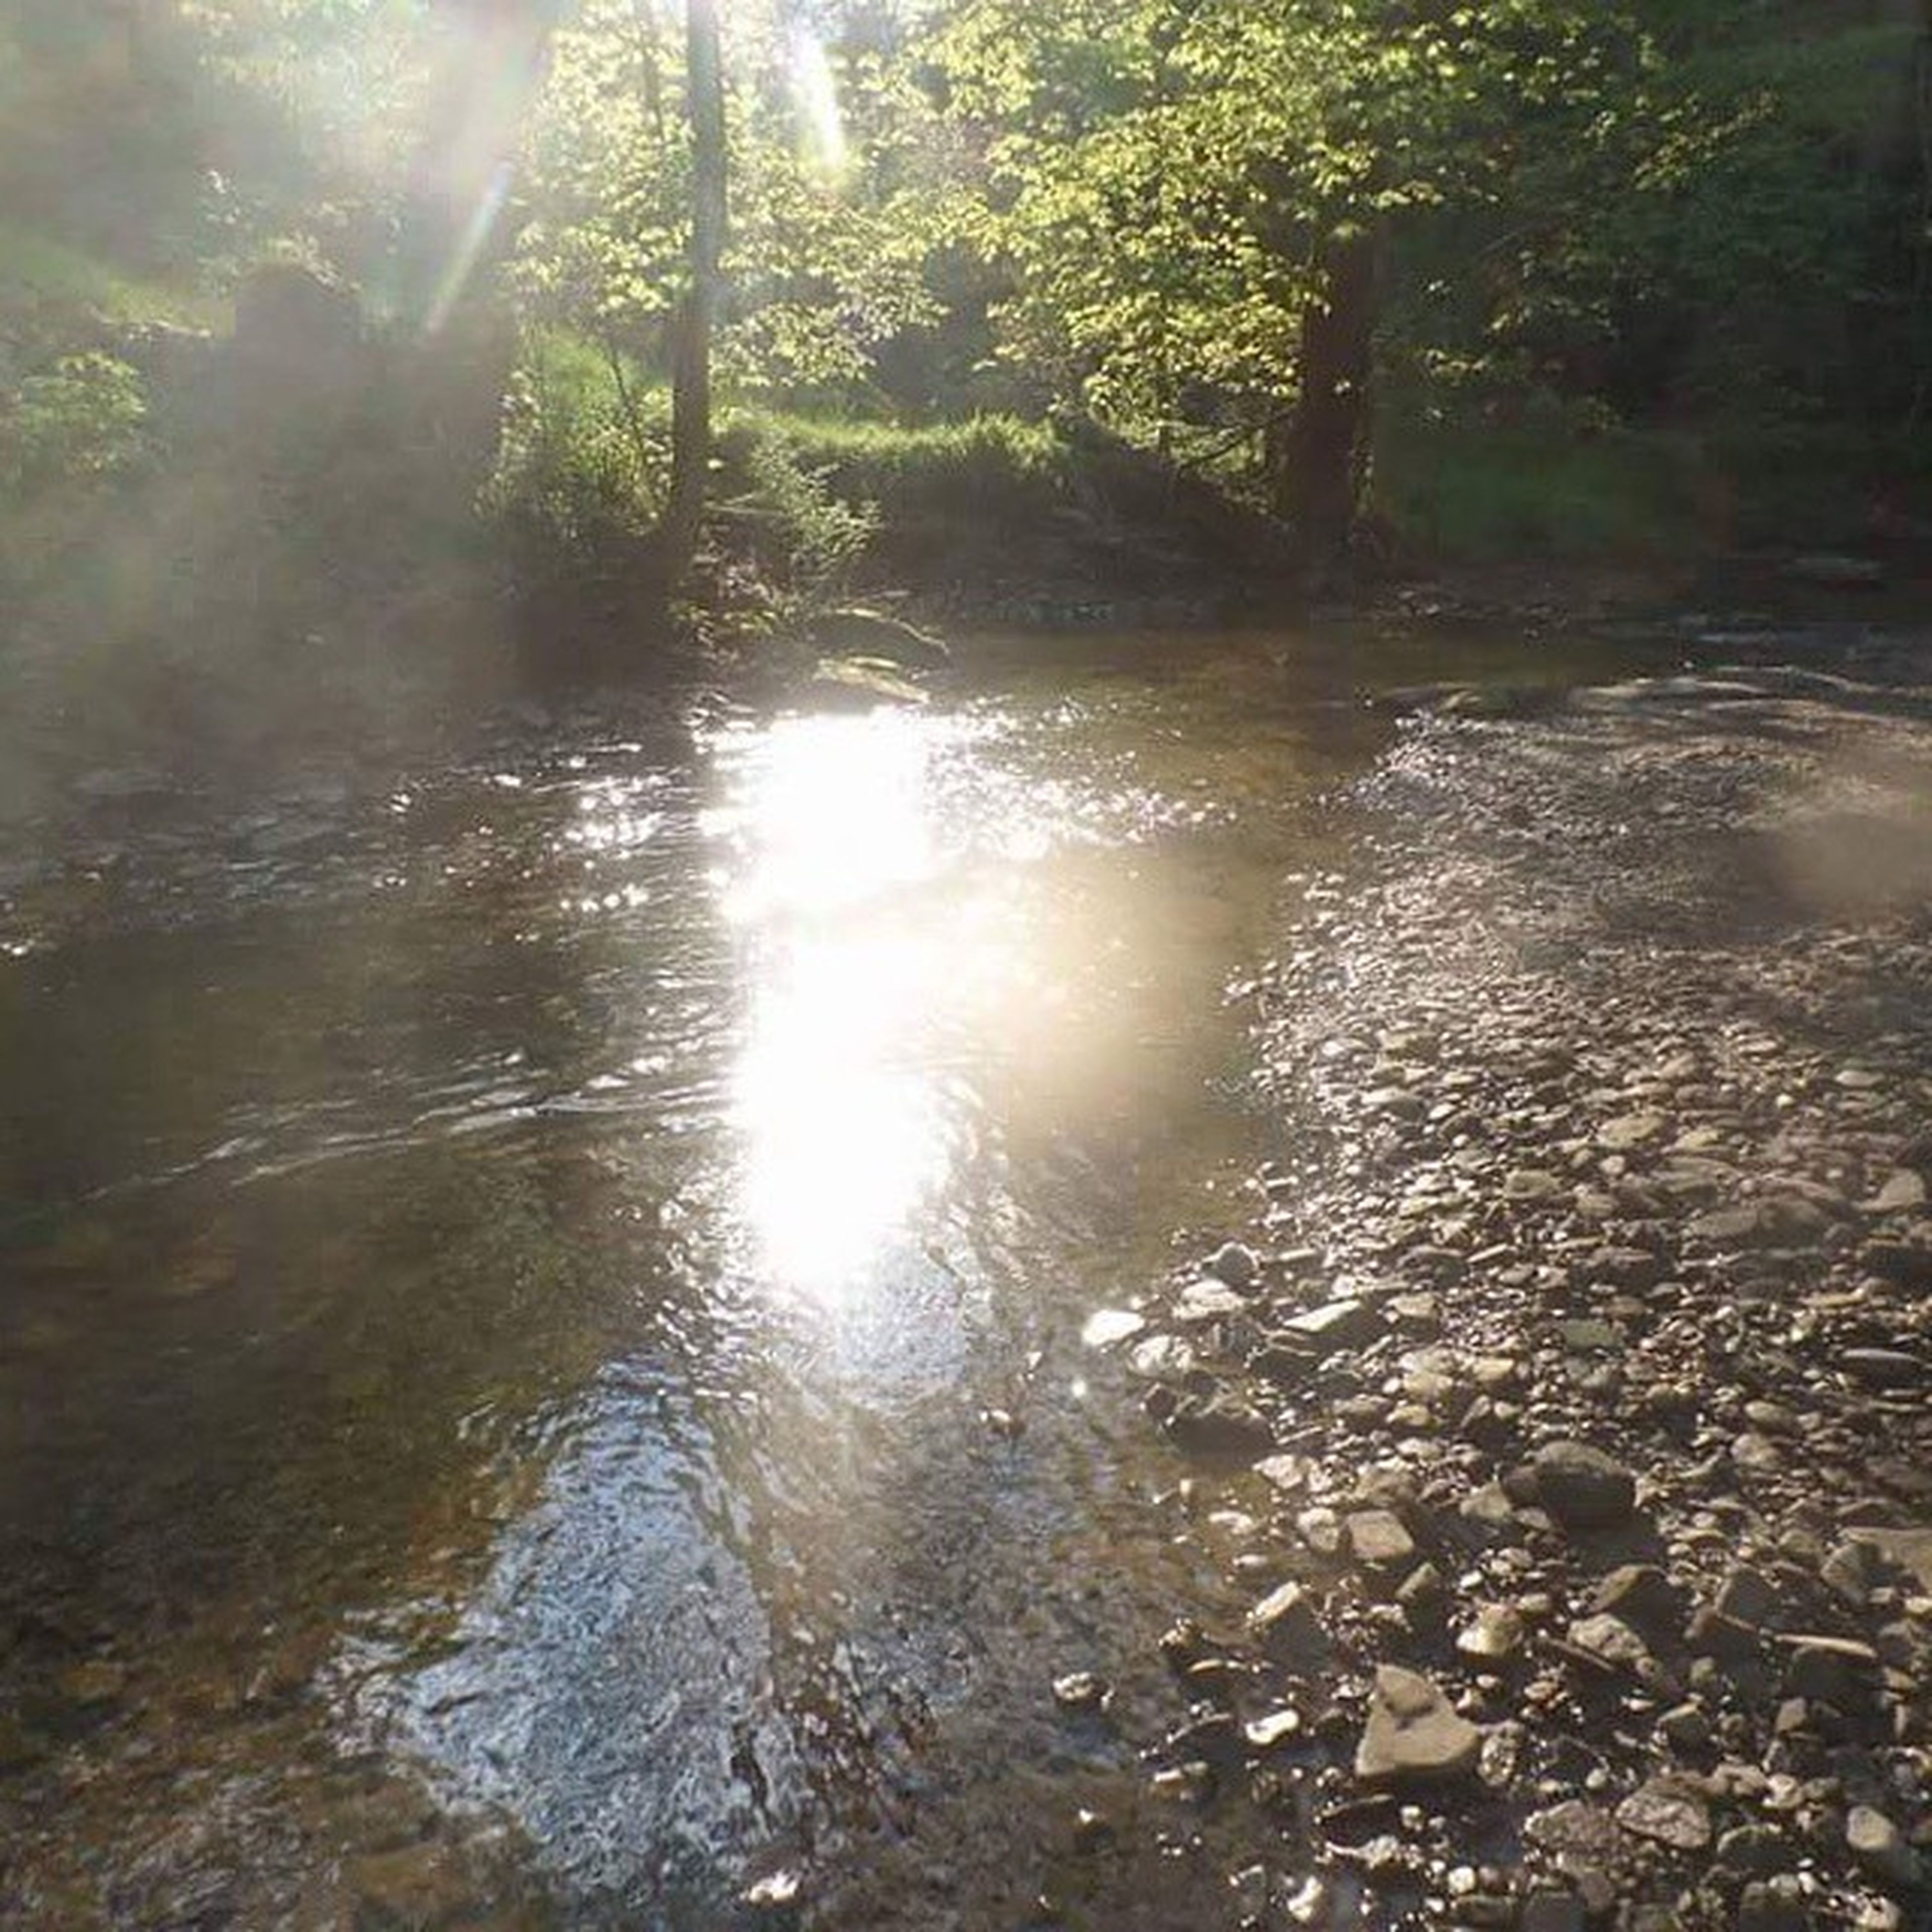 water, sun, sunlight, sunbeam, tranquility, reflection, tree, tranquil scene, nature, lens flare, beauty in nature, scenics, lake, forest, growth, river, idyllic, stream, outdoors, no people